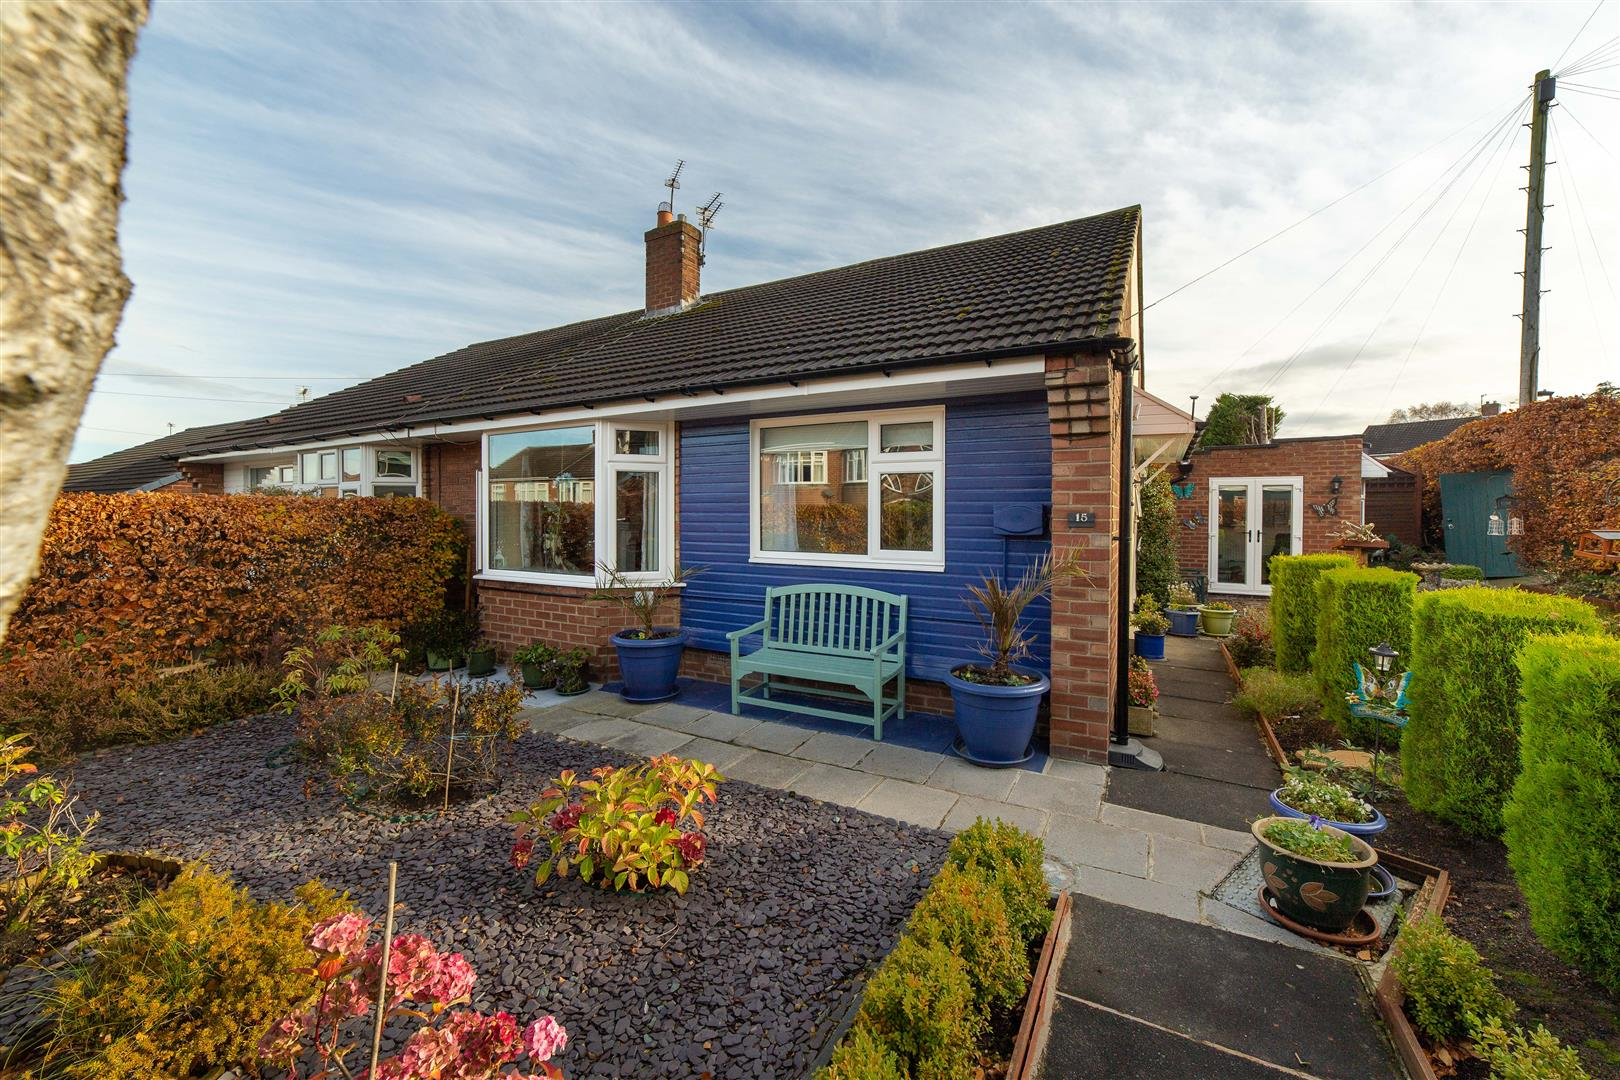 2 bed semi-detached bungalow for sale in Wideopen, NE13 6AG - Property Image 1